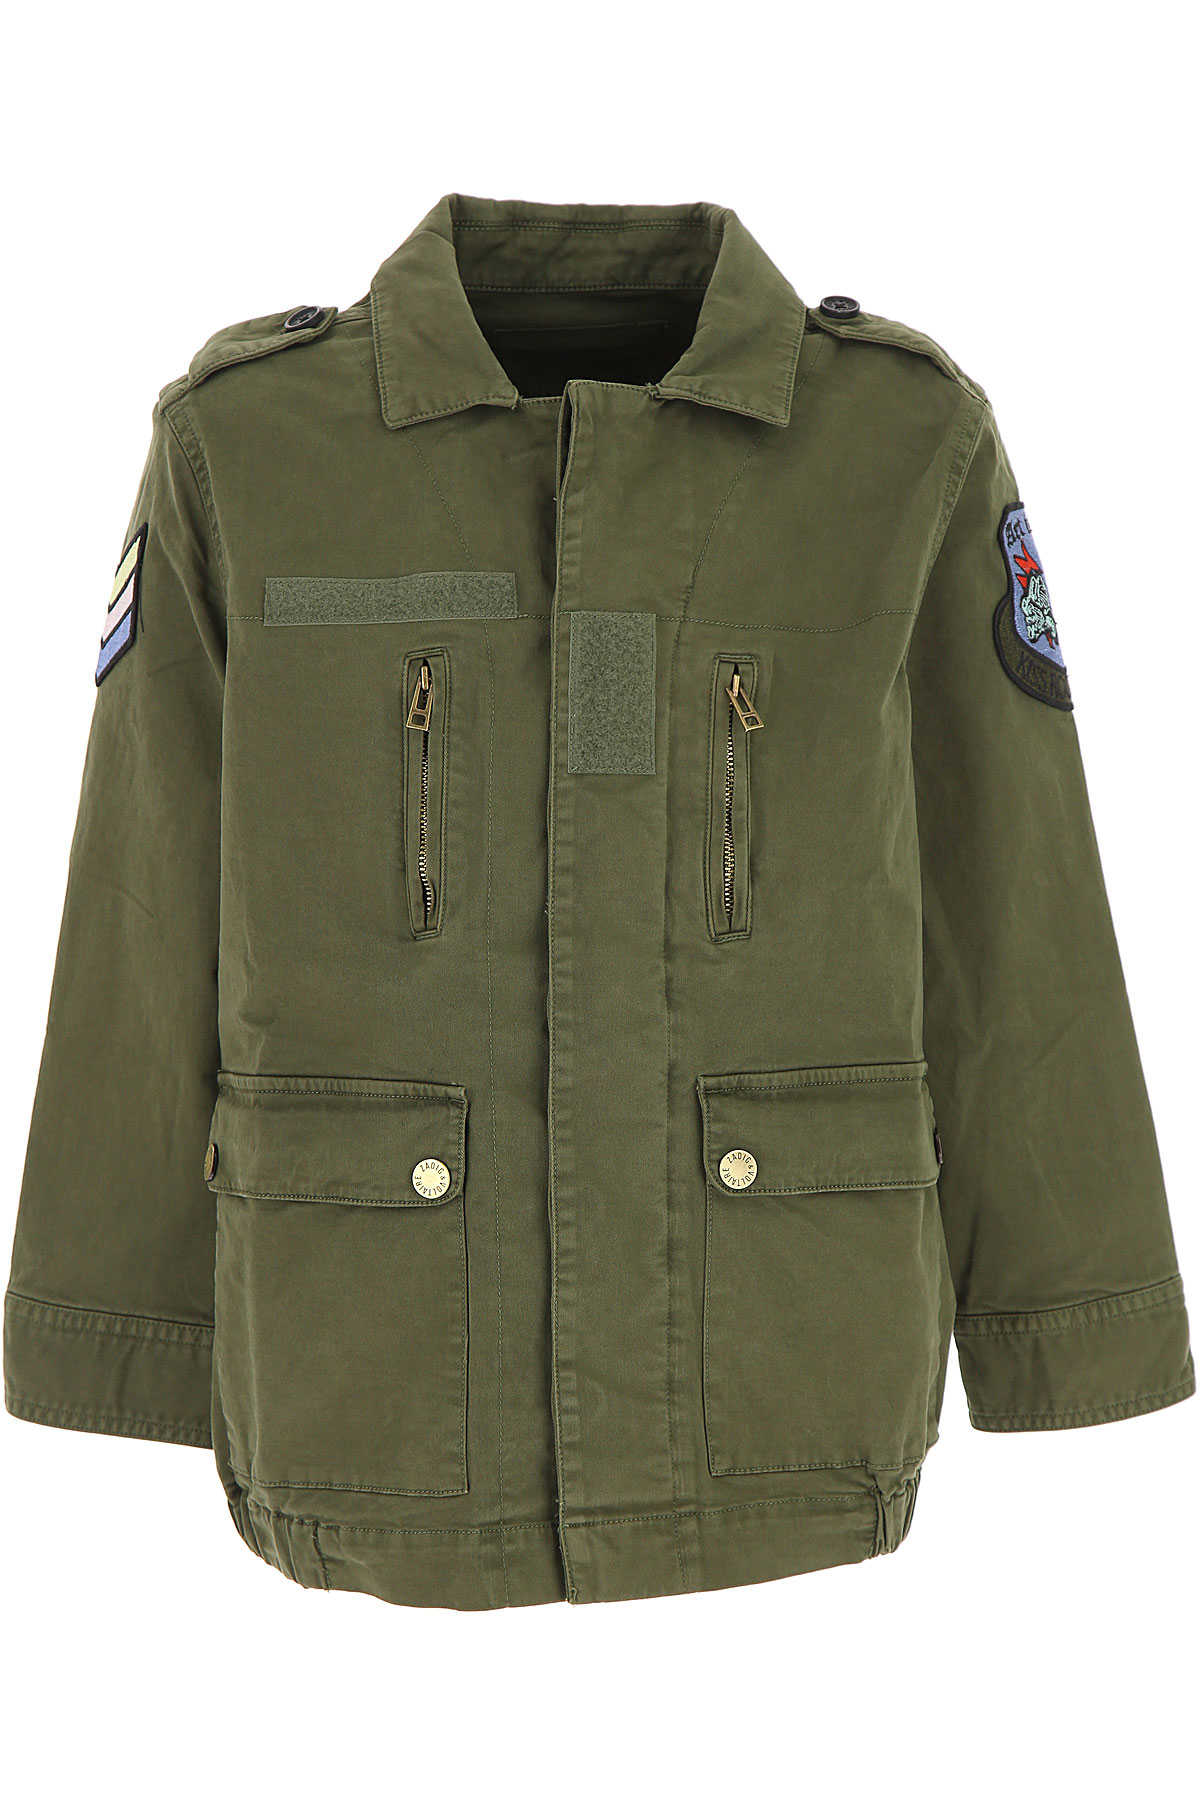 Zadig & Voltaire Kids Jacket for Boys On Sale Military Green SE - GOOFASH